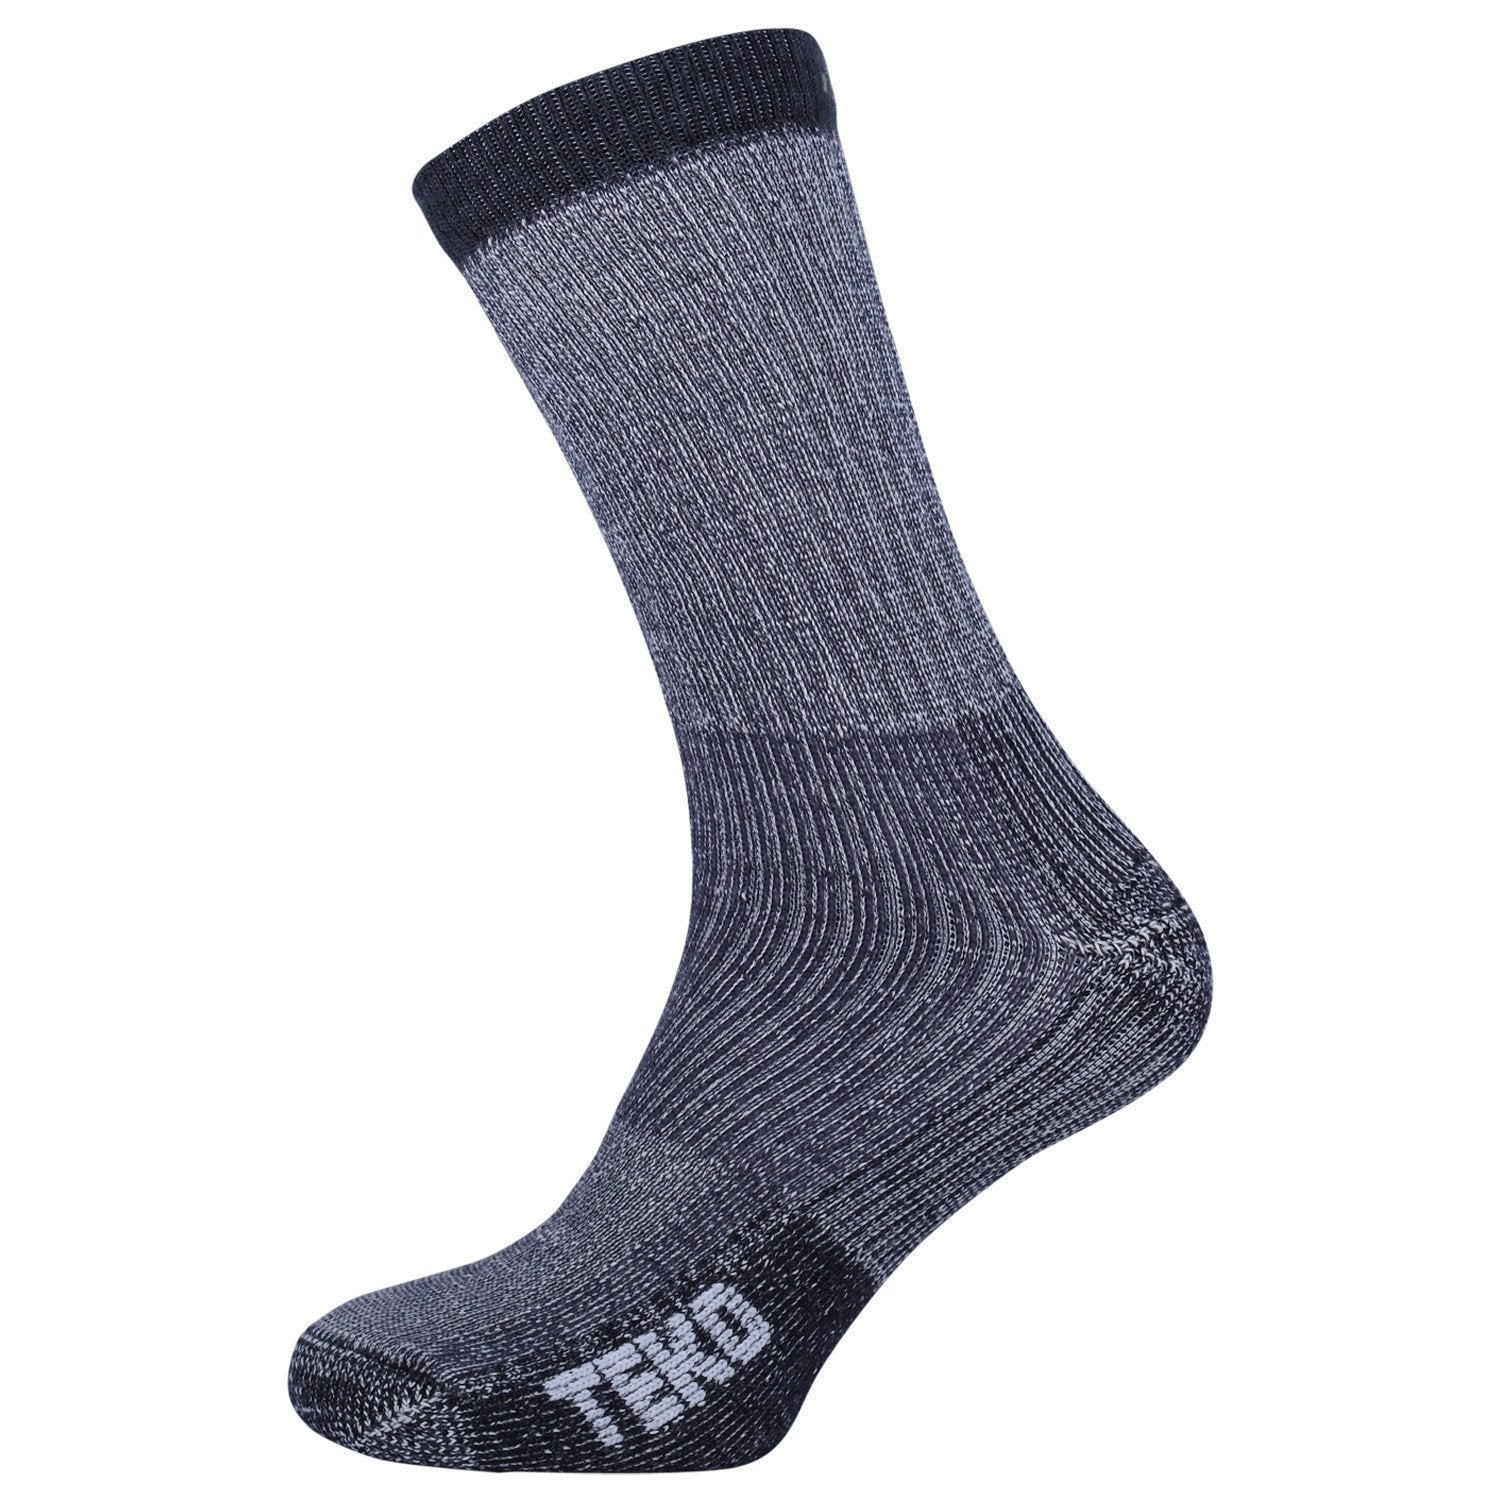 Teko Merino Light Hiking Socks